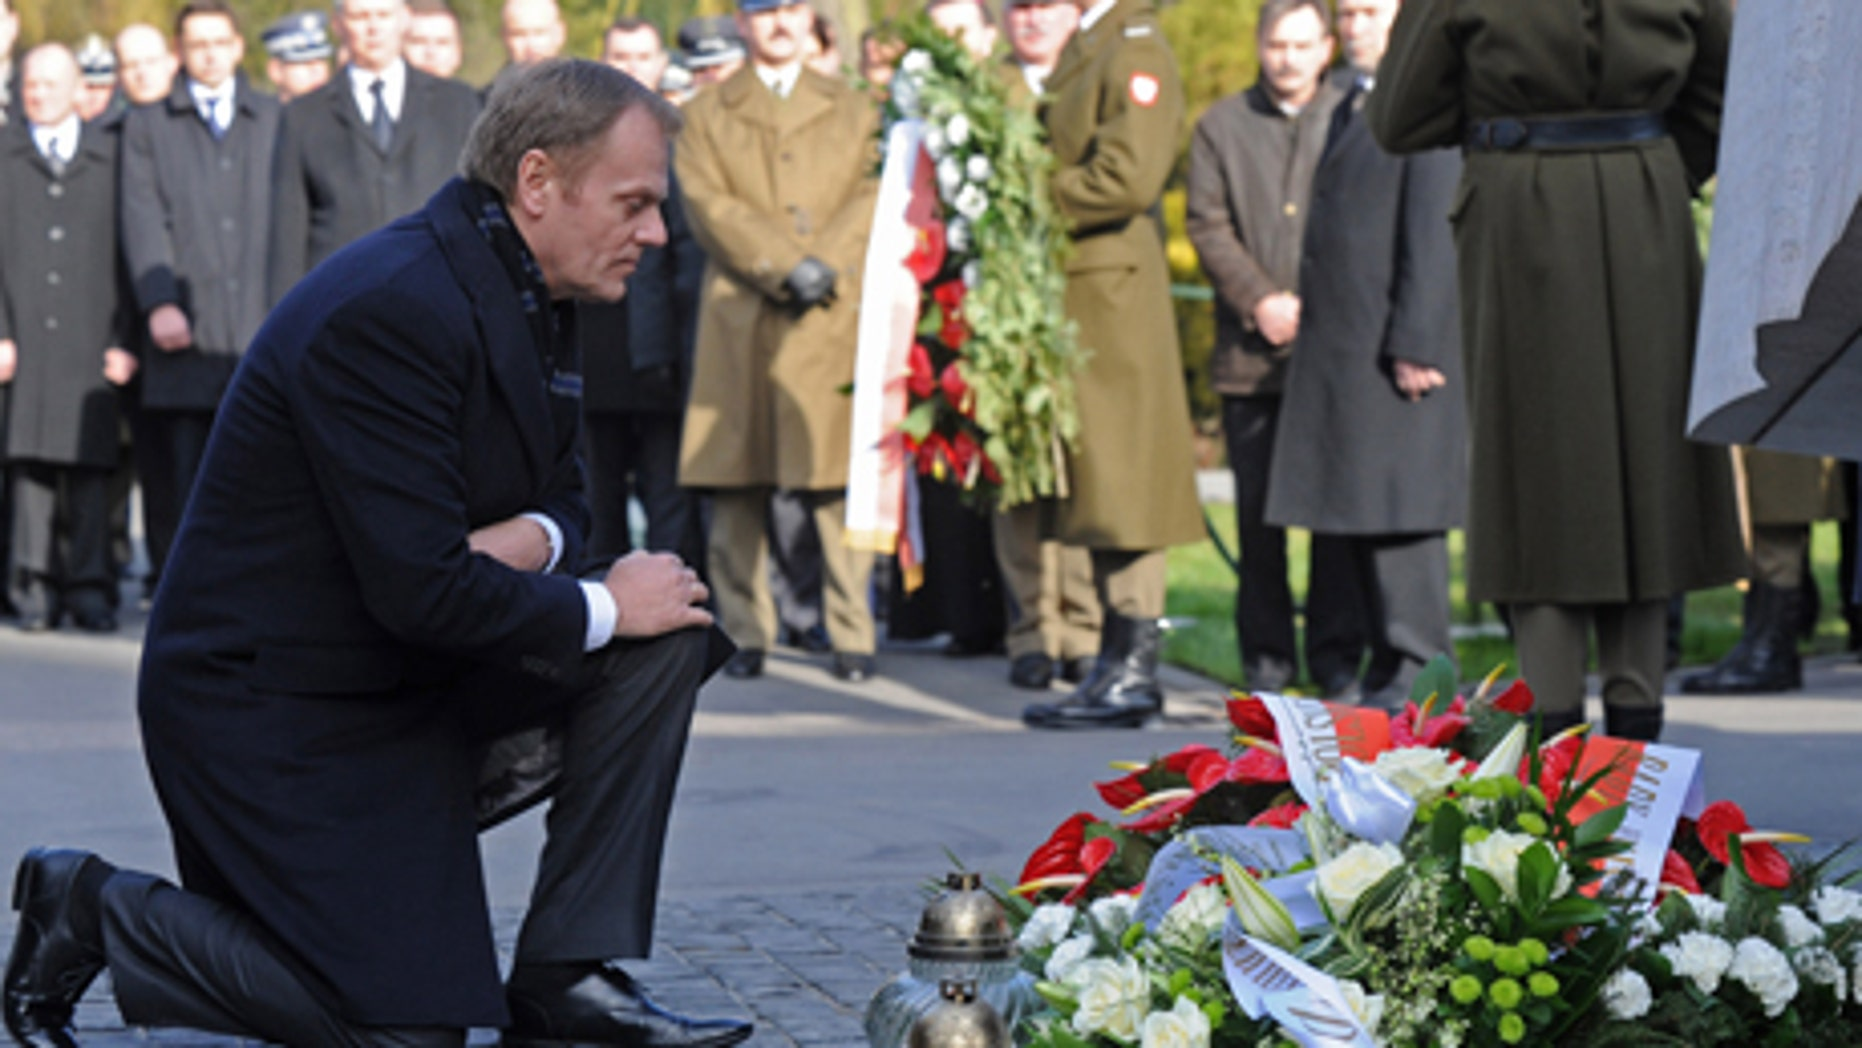 Tuesday April 10:Polish Prime Minister Donald Tusk kneels in front of a memorial dedicated to the victims of a presidential plane crash during commemorations marking the second anniversary of the accident, at the Powazki cemetery in Warsaw, Poland. Exactly two years ago a plane with Polish President Lech Kaczynski, his wife and officials crashed in Russia, killing all on board.